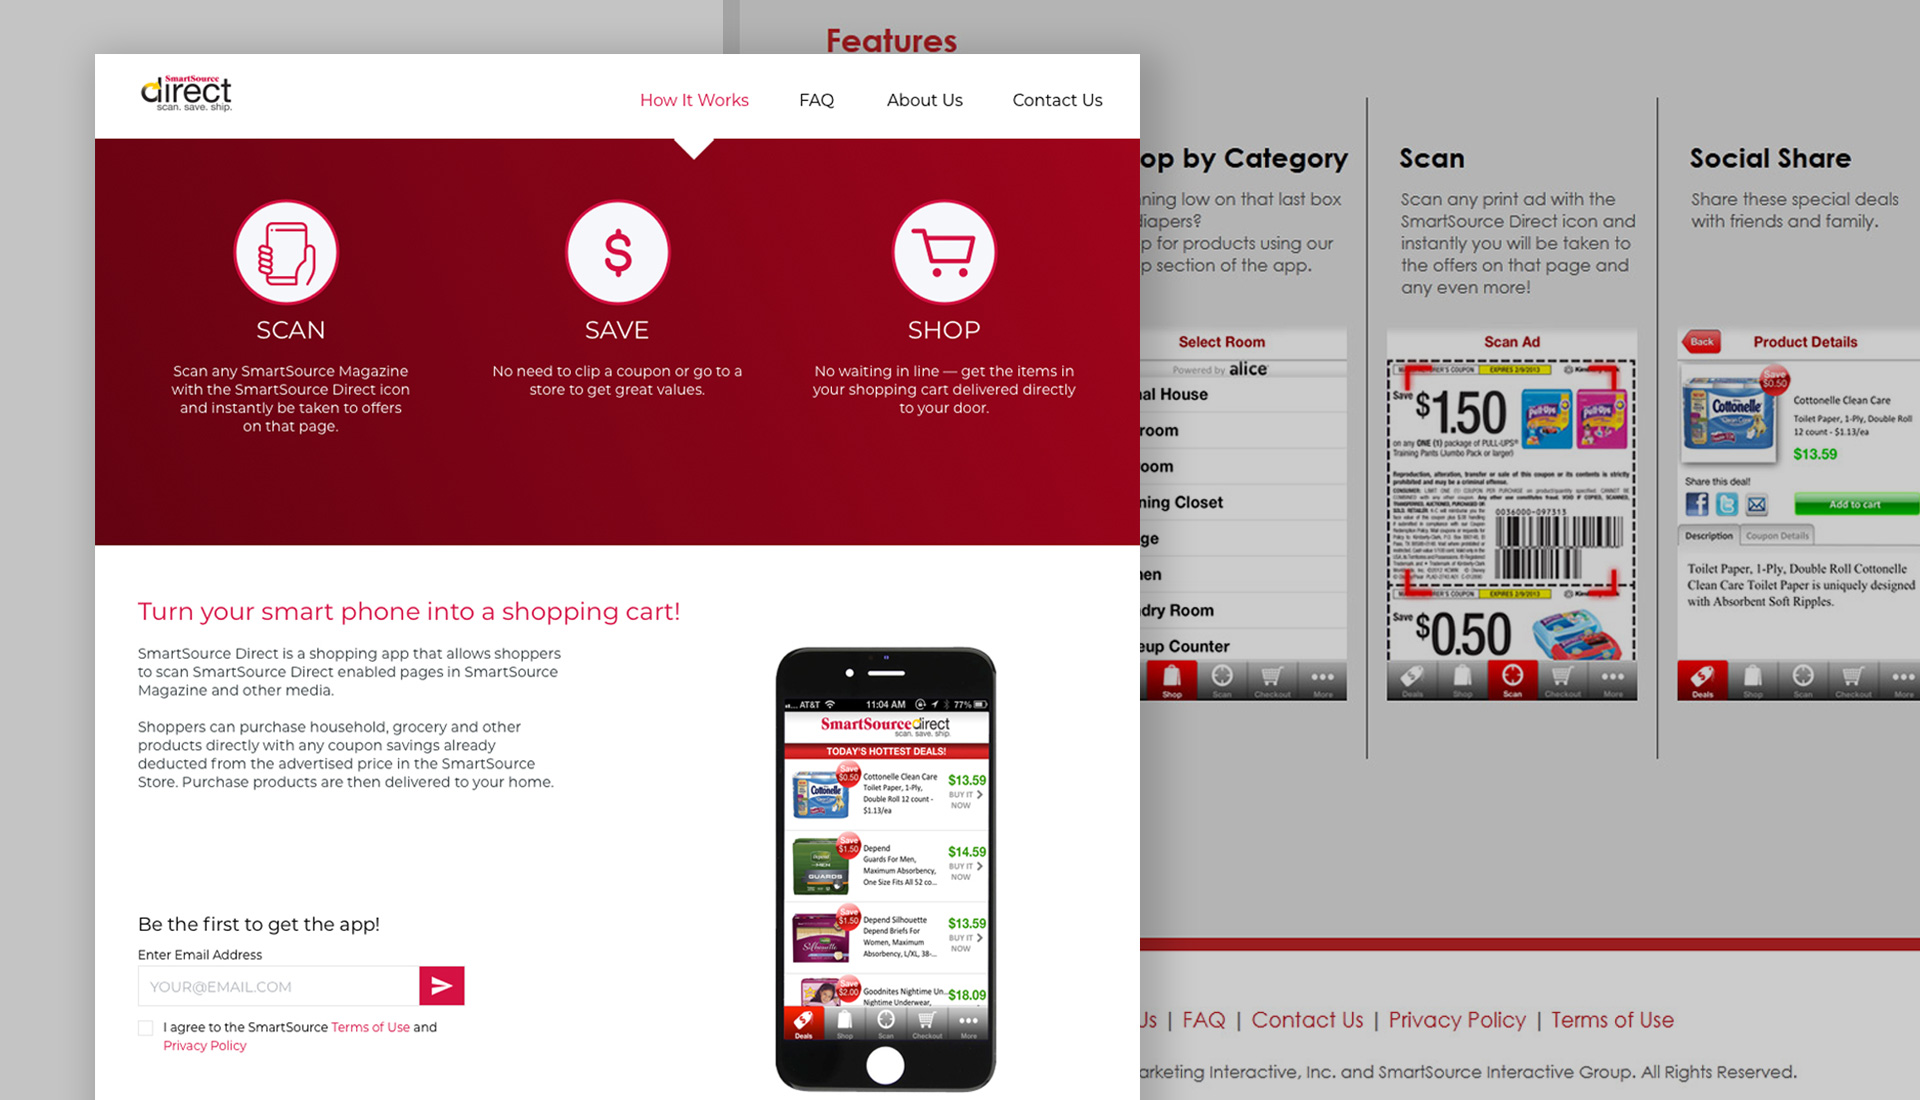 smartsource-direct-microsite